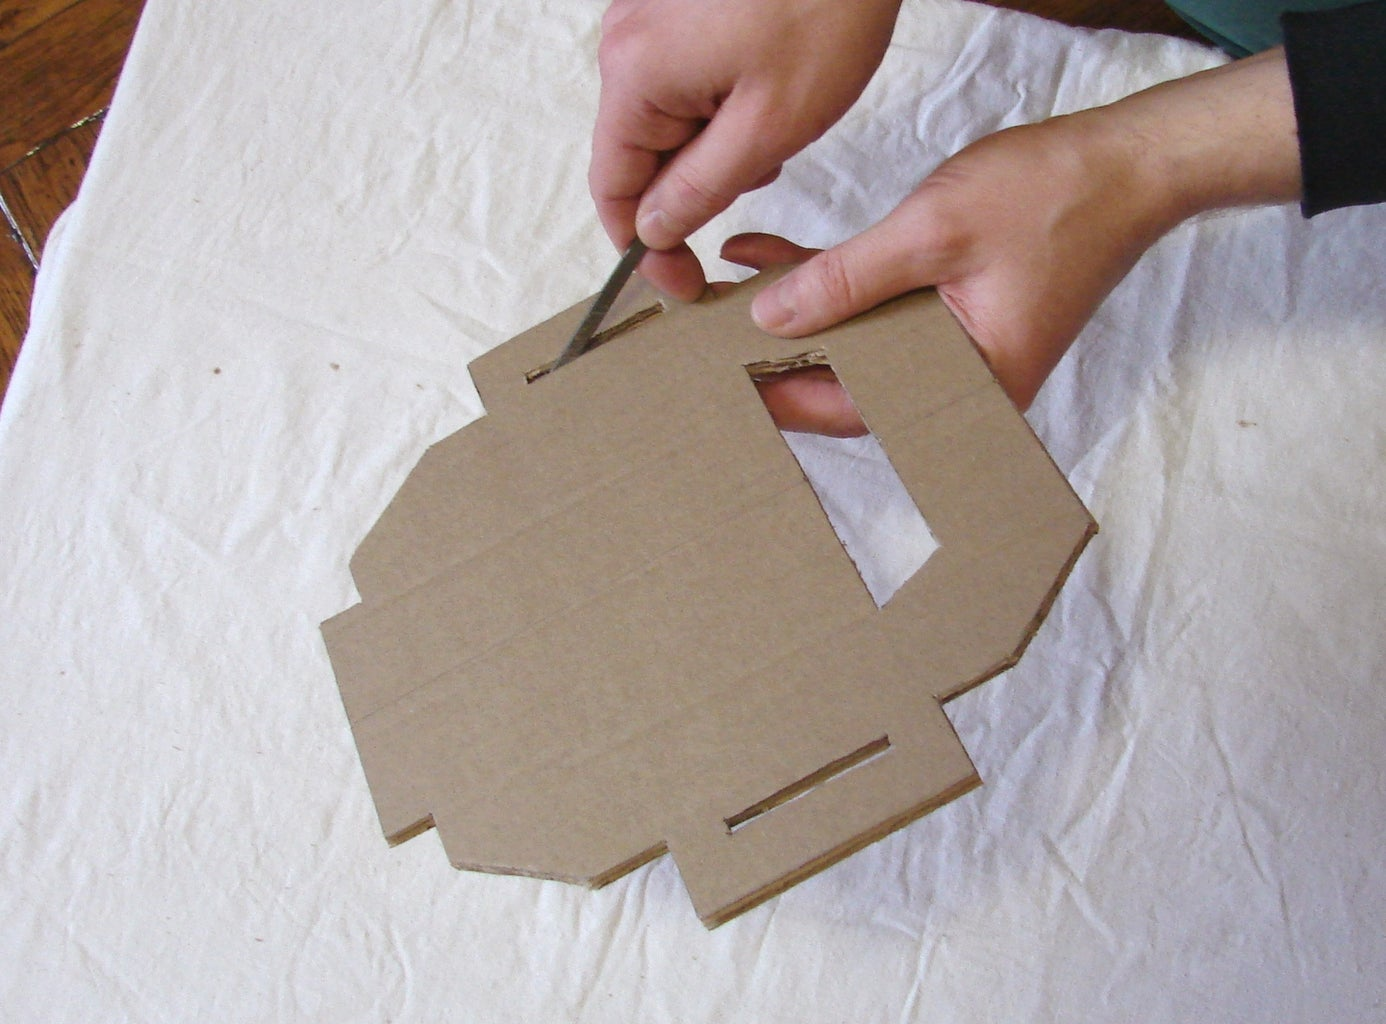 Cut Parts Out of Cardboard